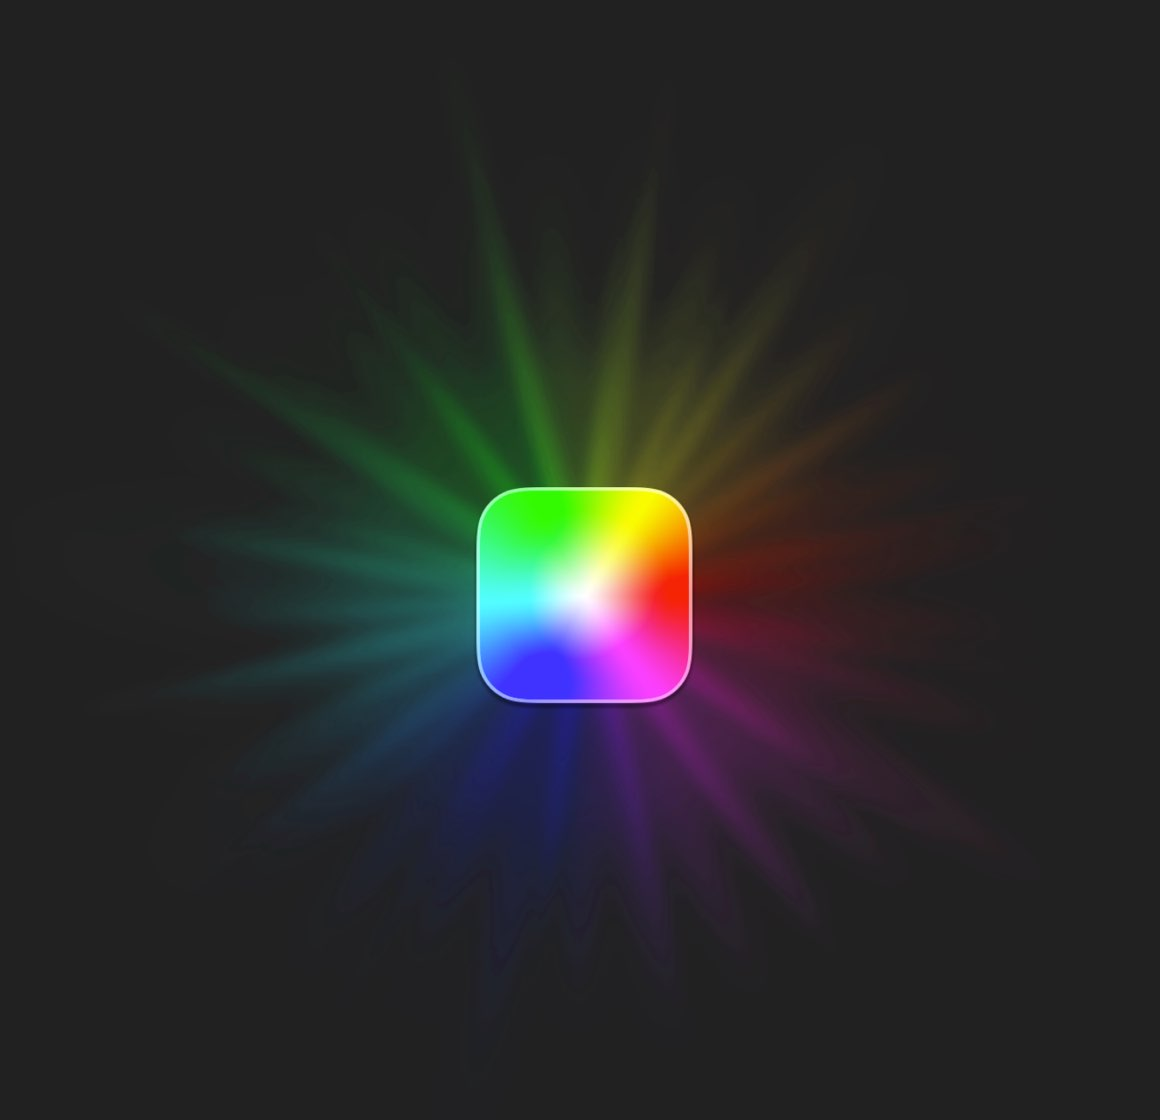 Lights app icon with light rays, as used in loading animation